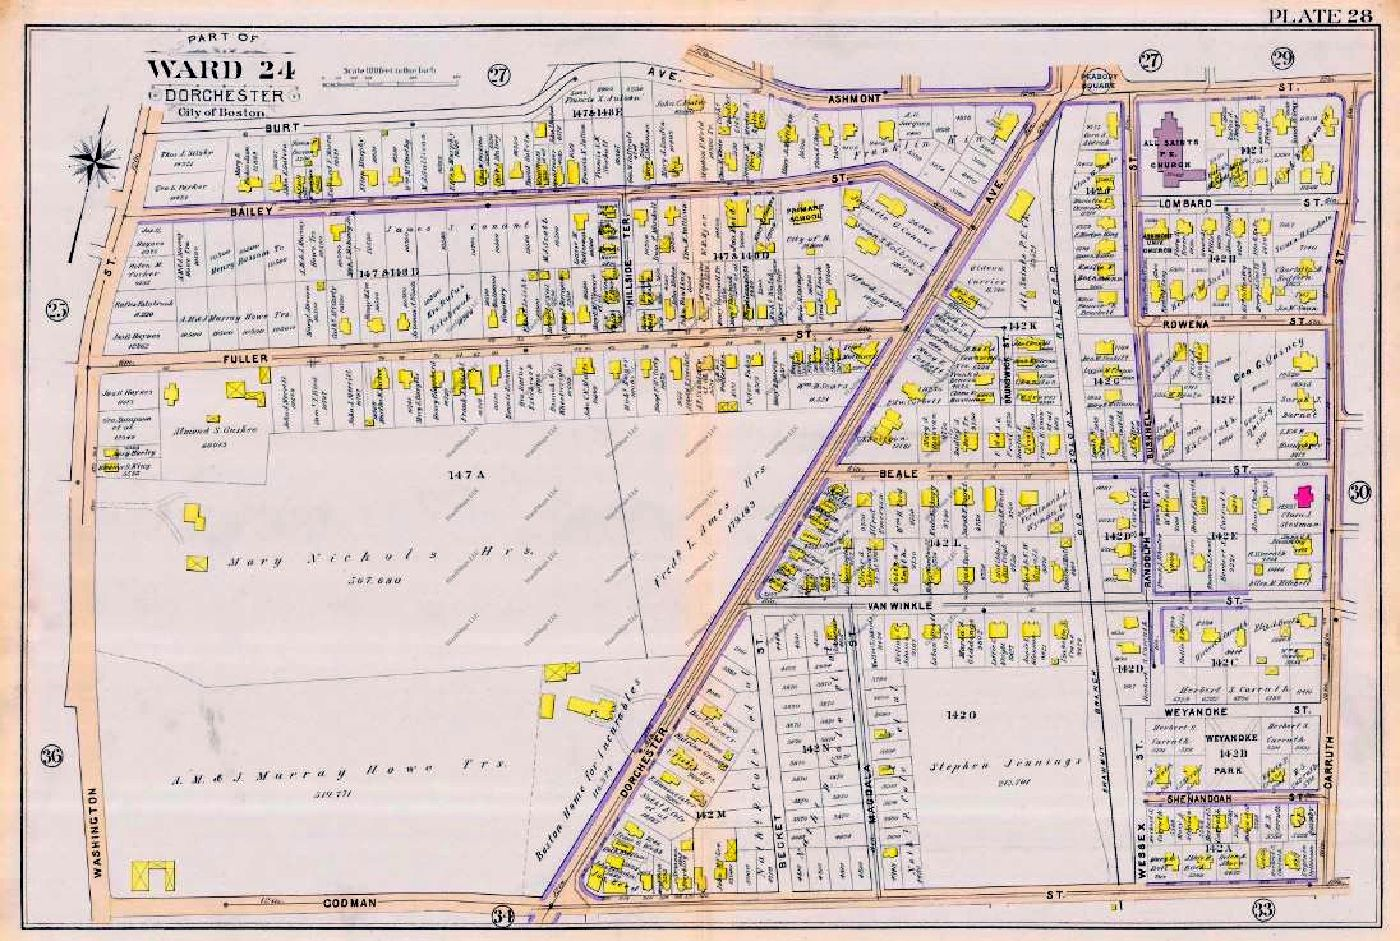 Dorchester 1910 map - Ashmont South